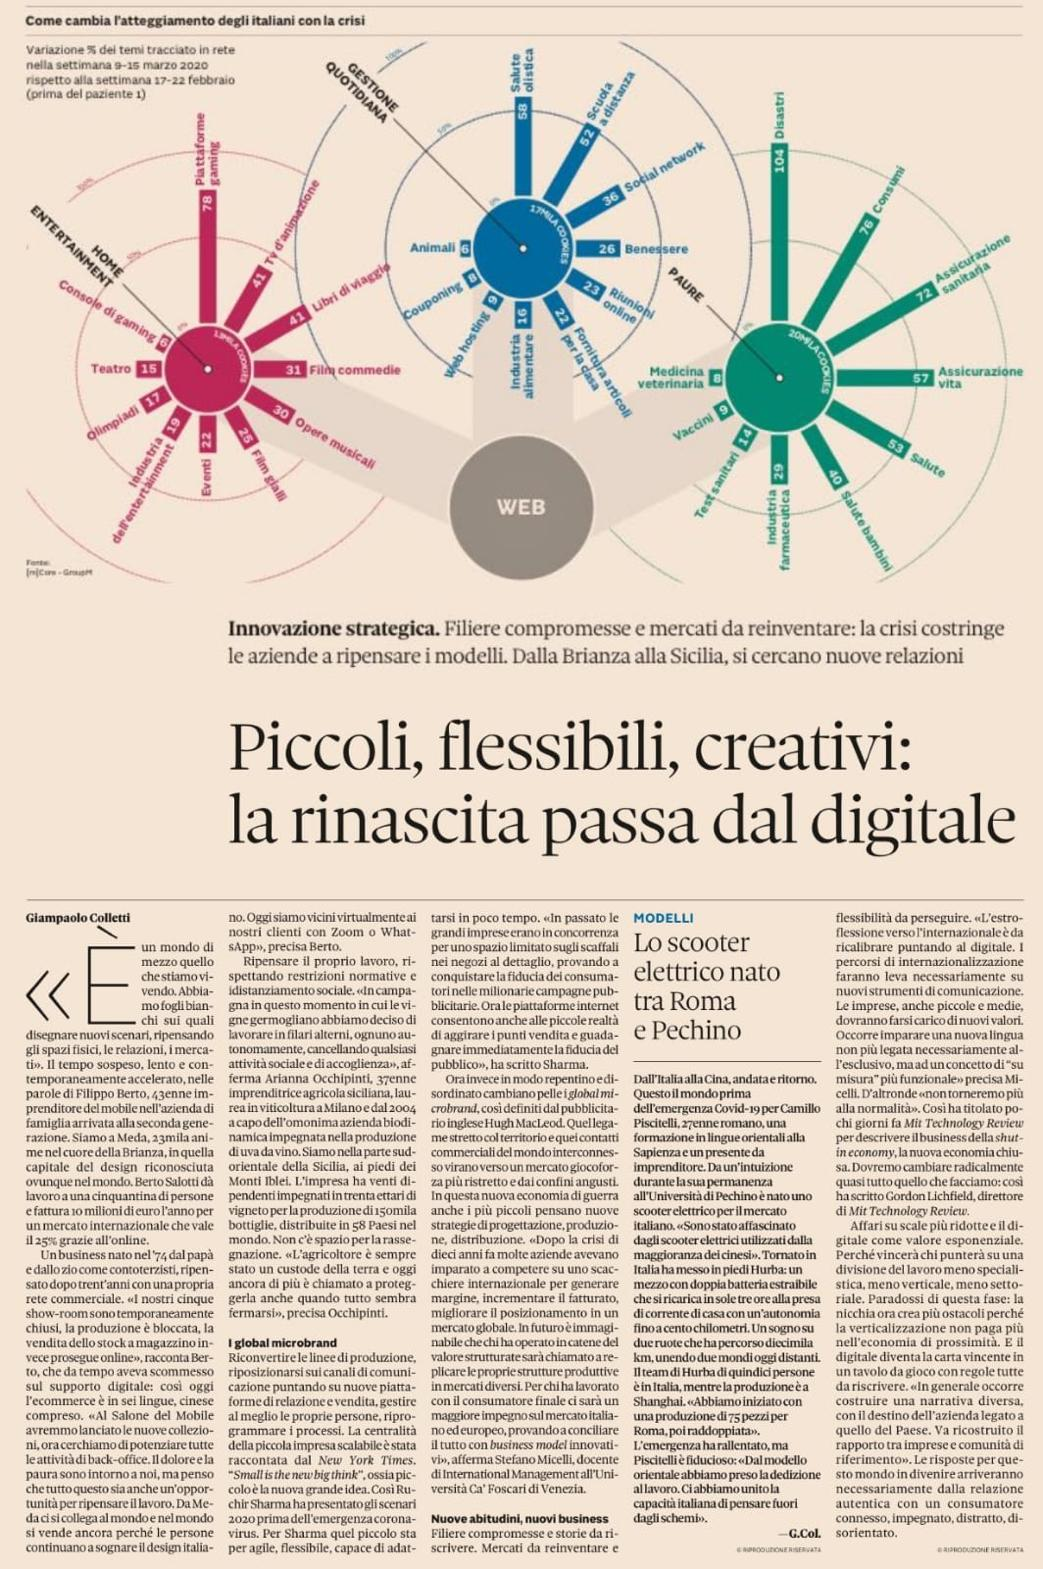 Interview Filippo Berto Il Sole 24 Ore